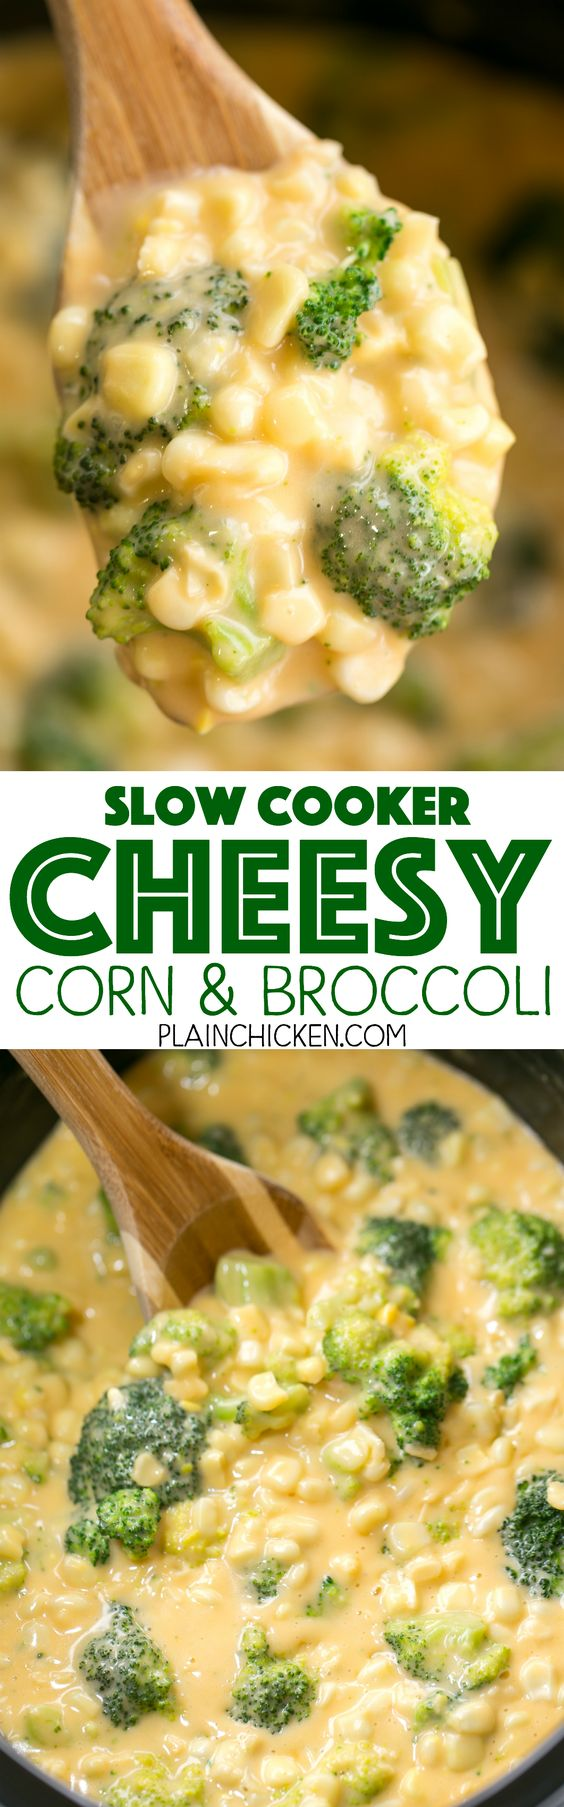 Slow Cooker Cheesy Corn and Broccoli Vegetable Side Dish Recipe via Plain Chicken - our favorite side dish! Corn, broccoli, Velveeta, cheddar cheese, cream of chicken soup and milk. Just throw everything in the slow cooker and let it work its magic. Can add ham to the slow cooker and make this a main dish. Everyone LOVES this cheesy side dish!!!